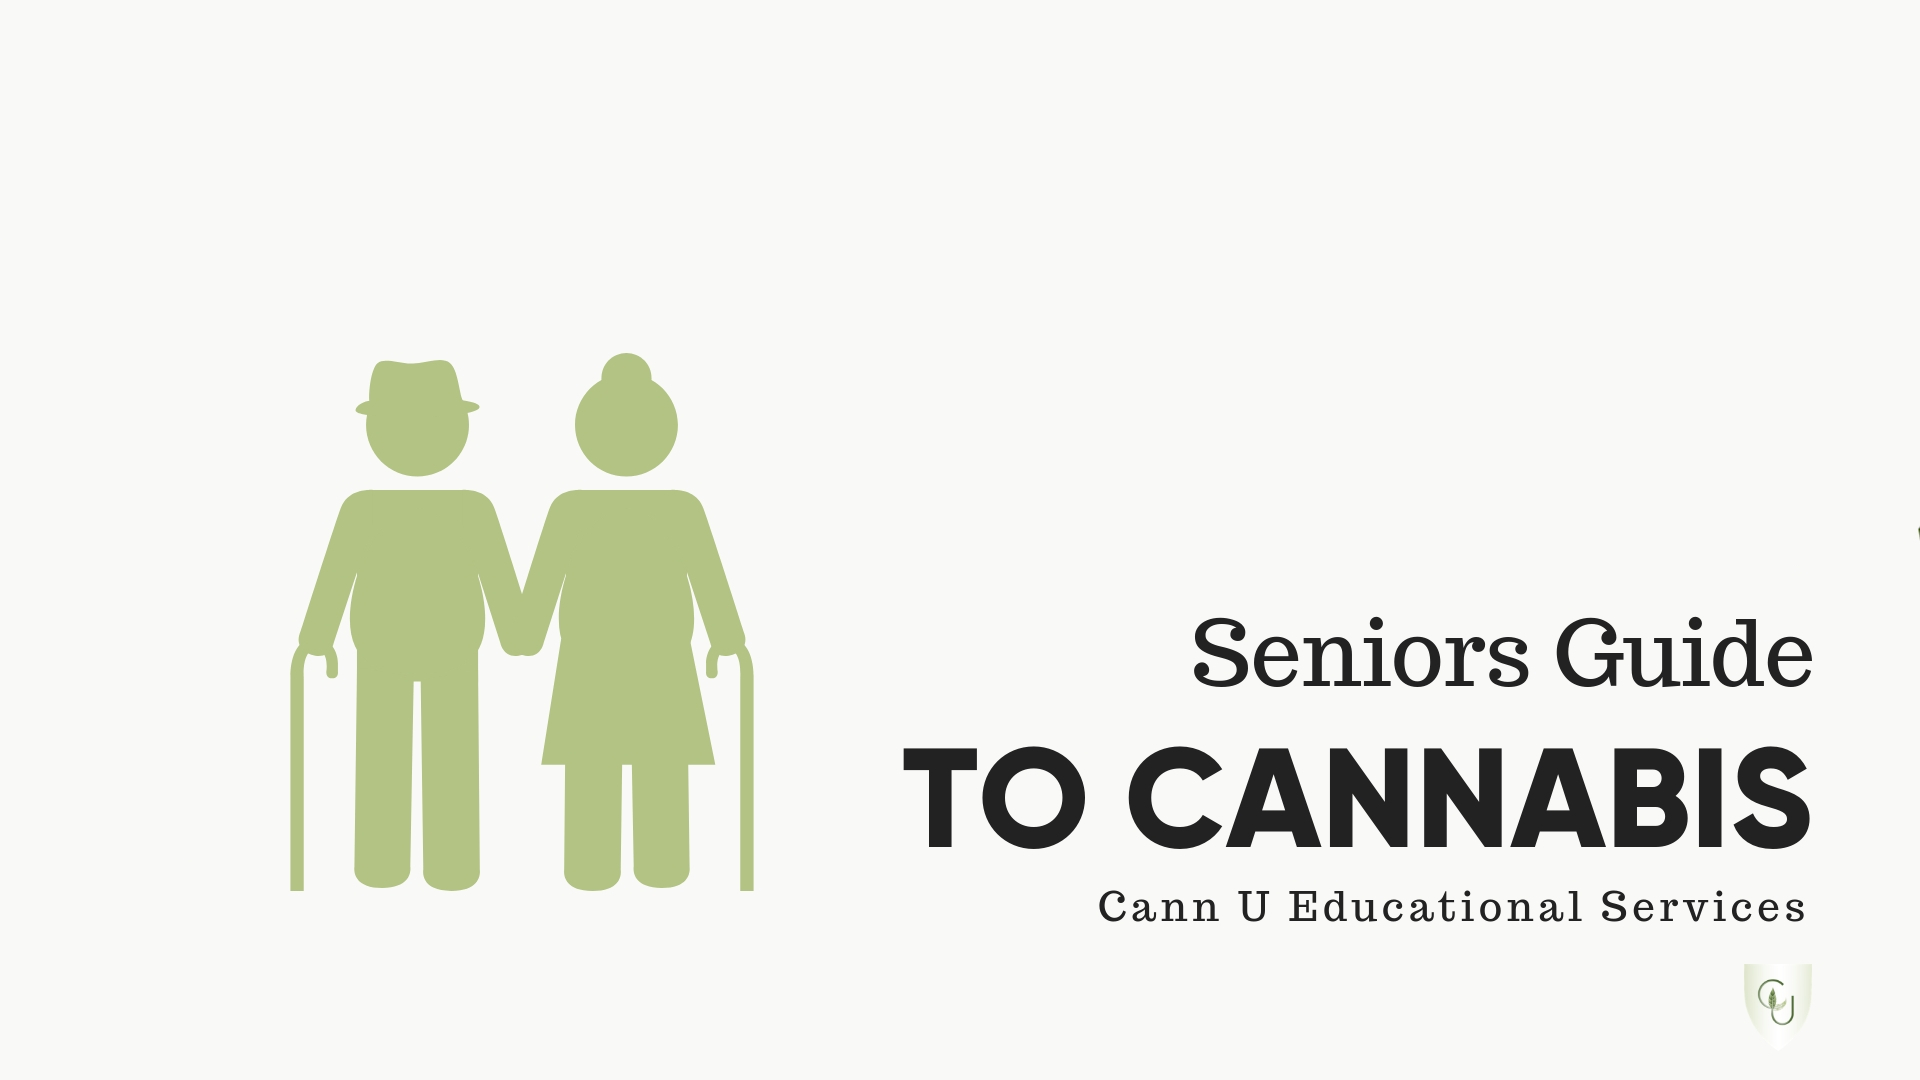 Senior's Guide to Cannabis - $39 CADHelping Seniors understand the safe and effective use of medical cannabis as part of their daily health care.16 modules and downloadable resources